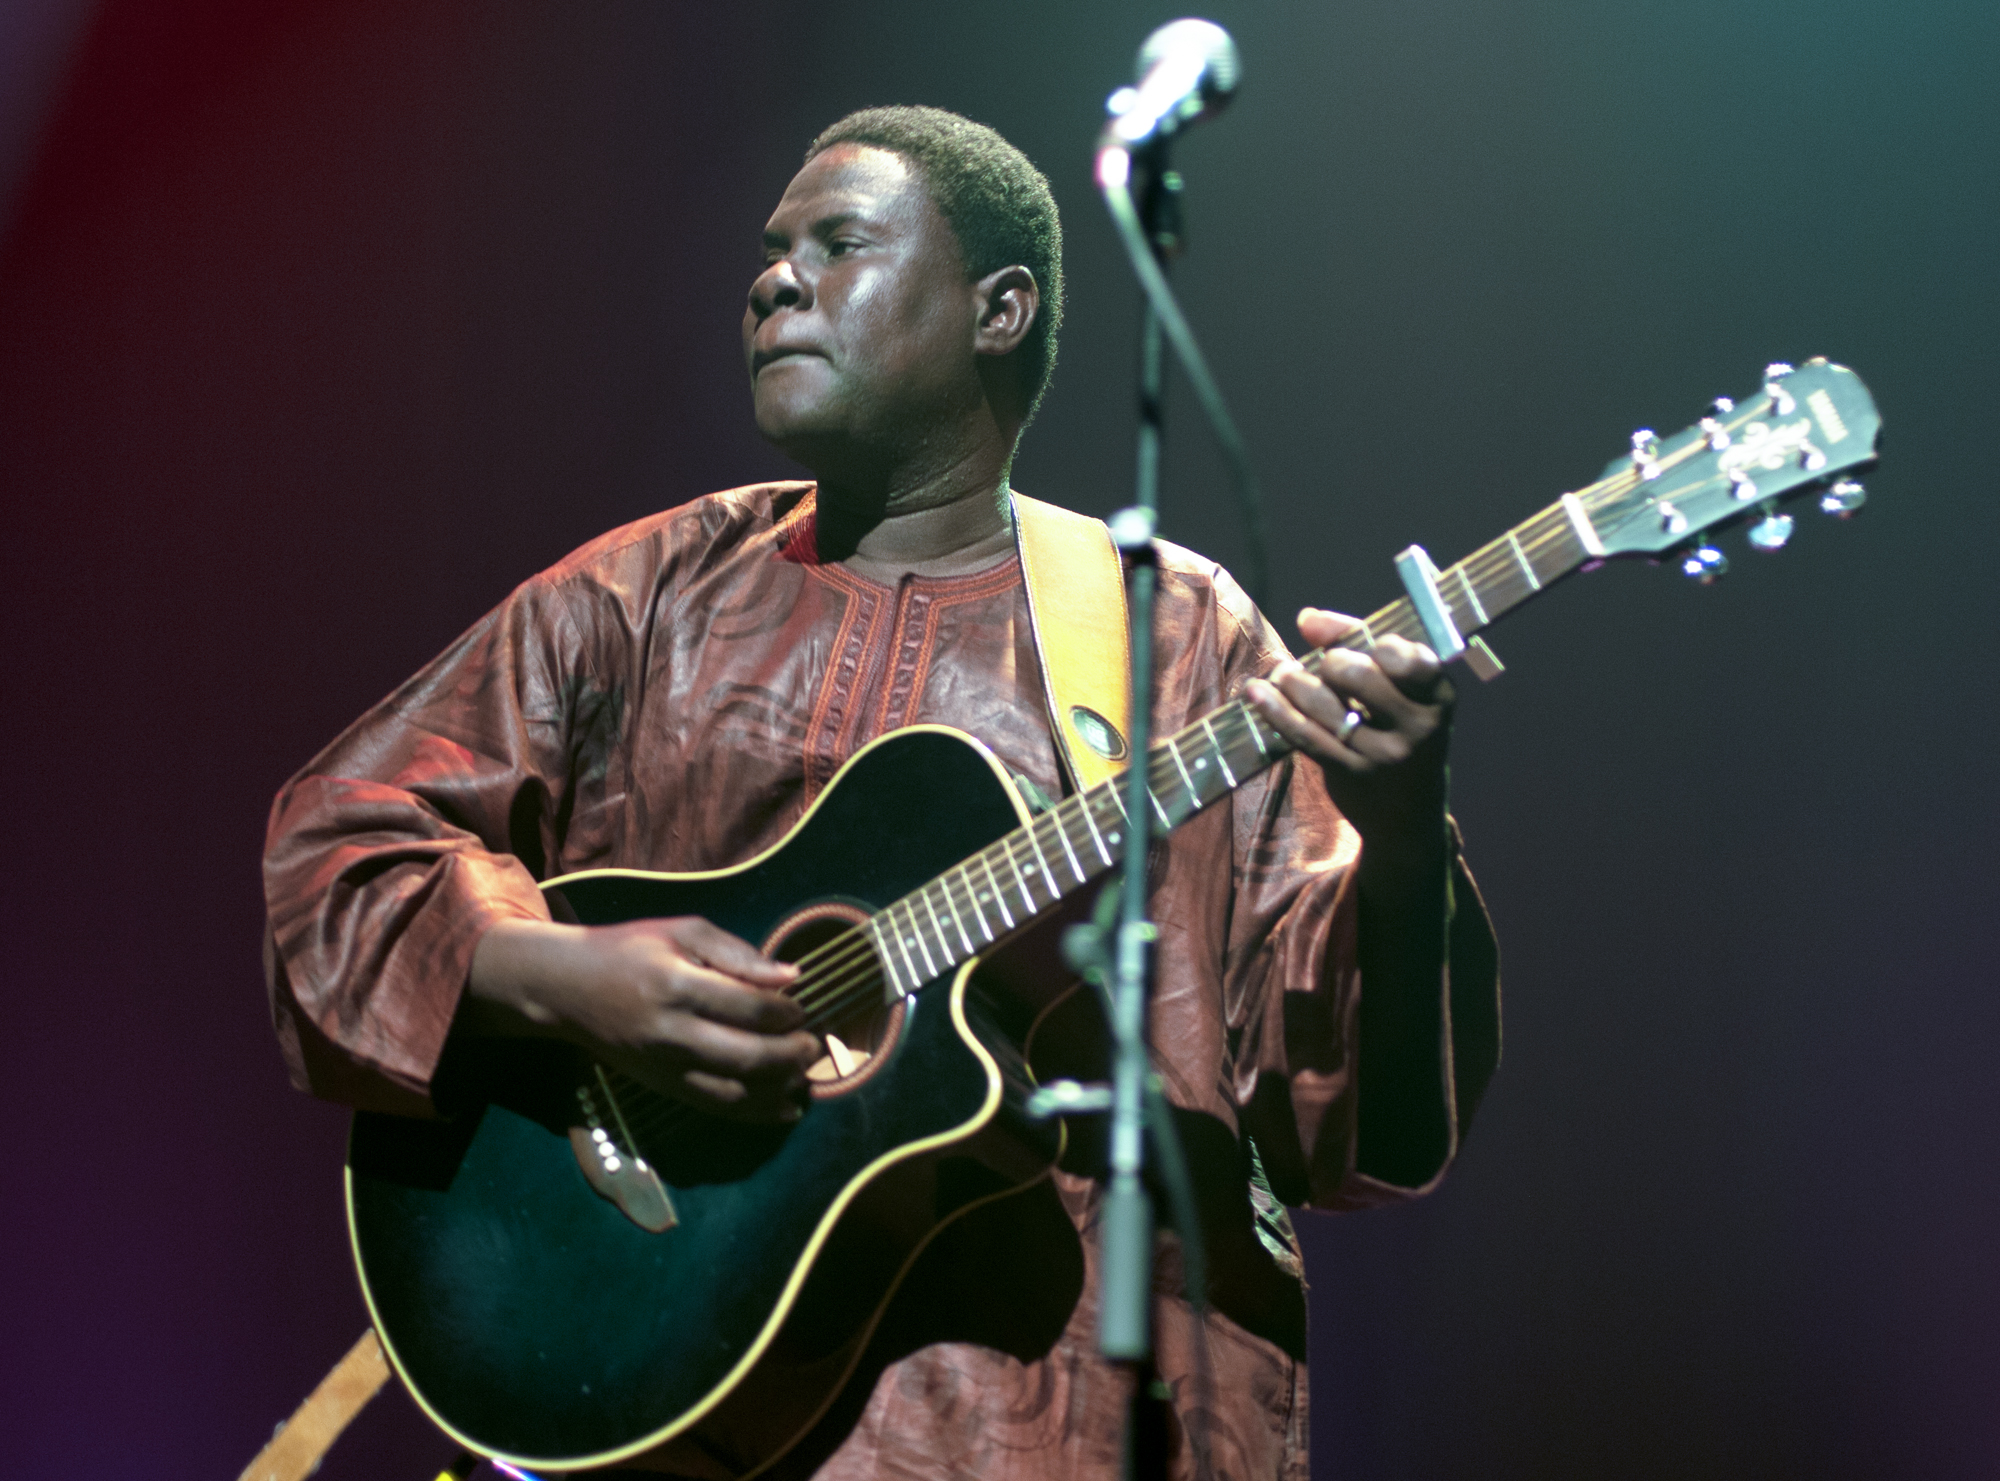 Aly magassa with vieux farka toure at the montreal international jazz festival 2013